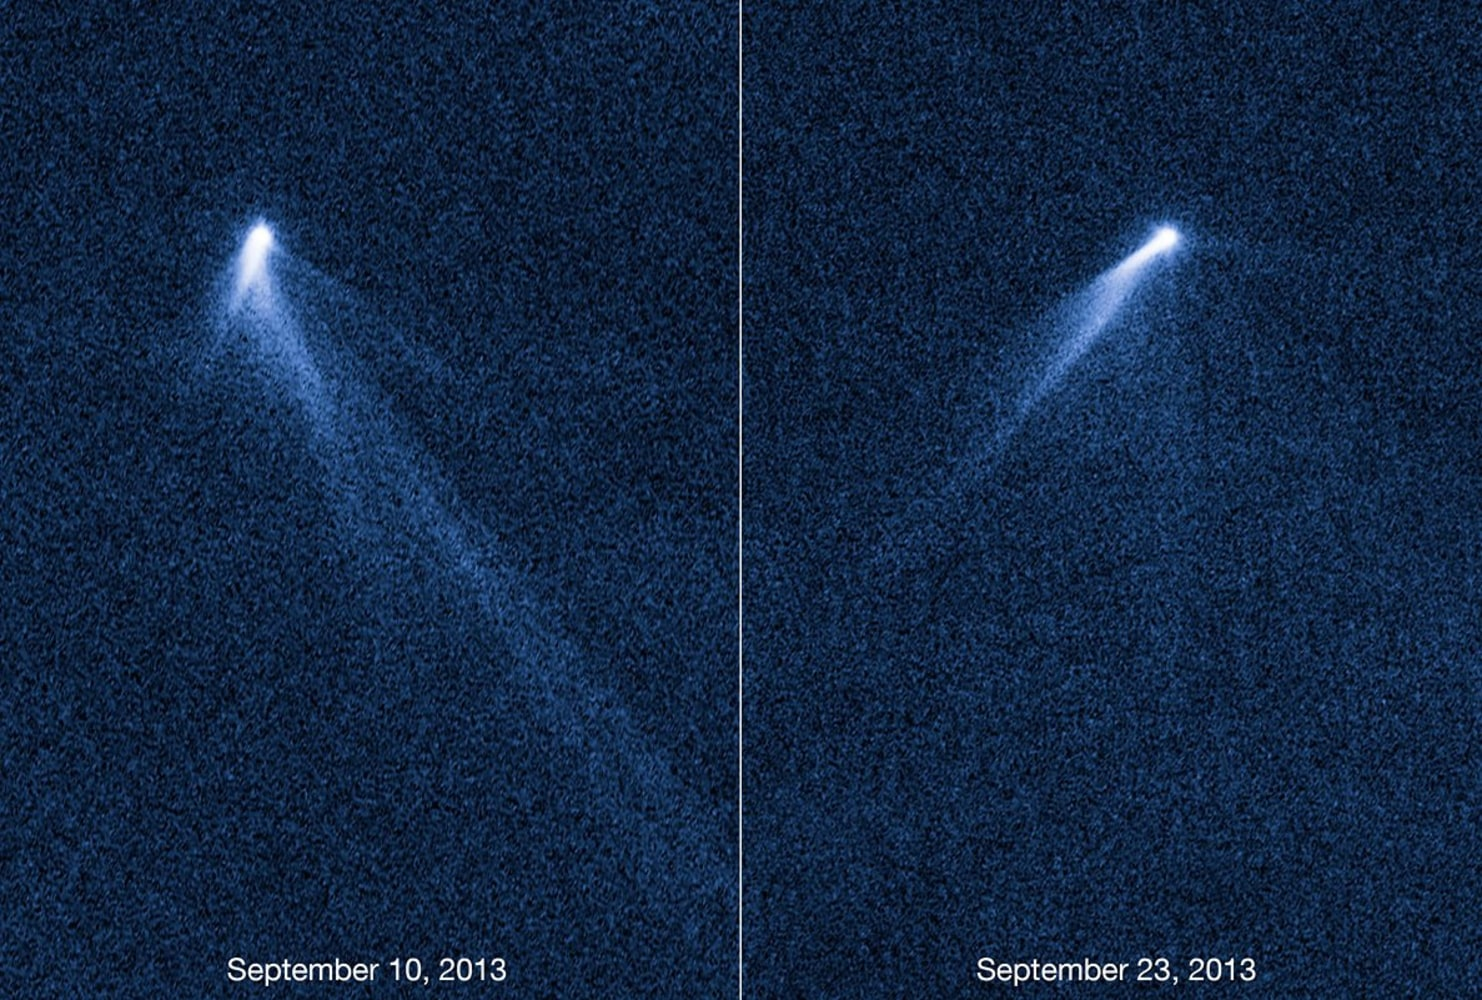 Six-tailed comet or self-destructing asteroid? It's a ...